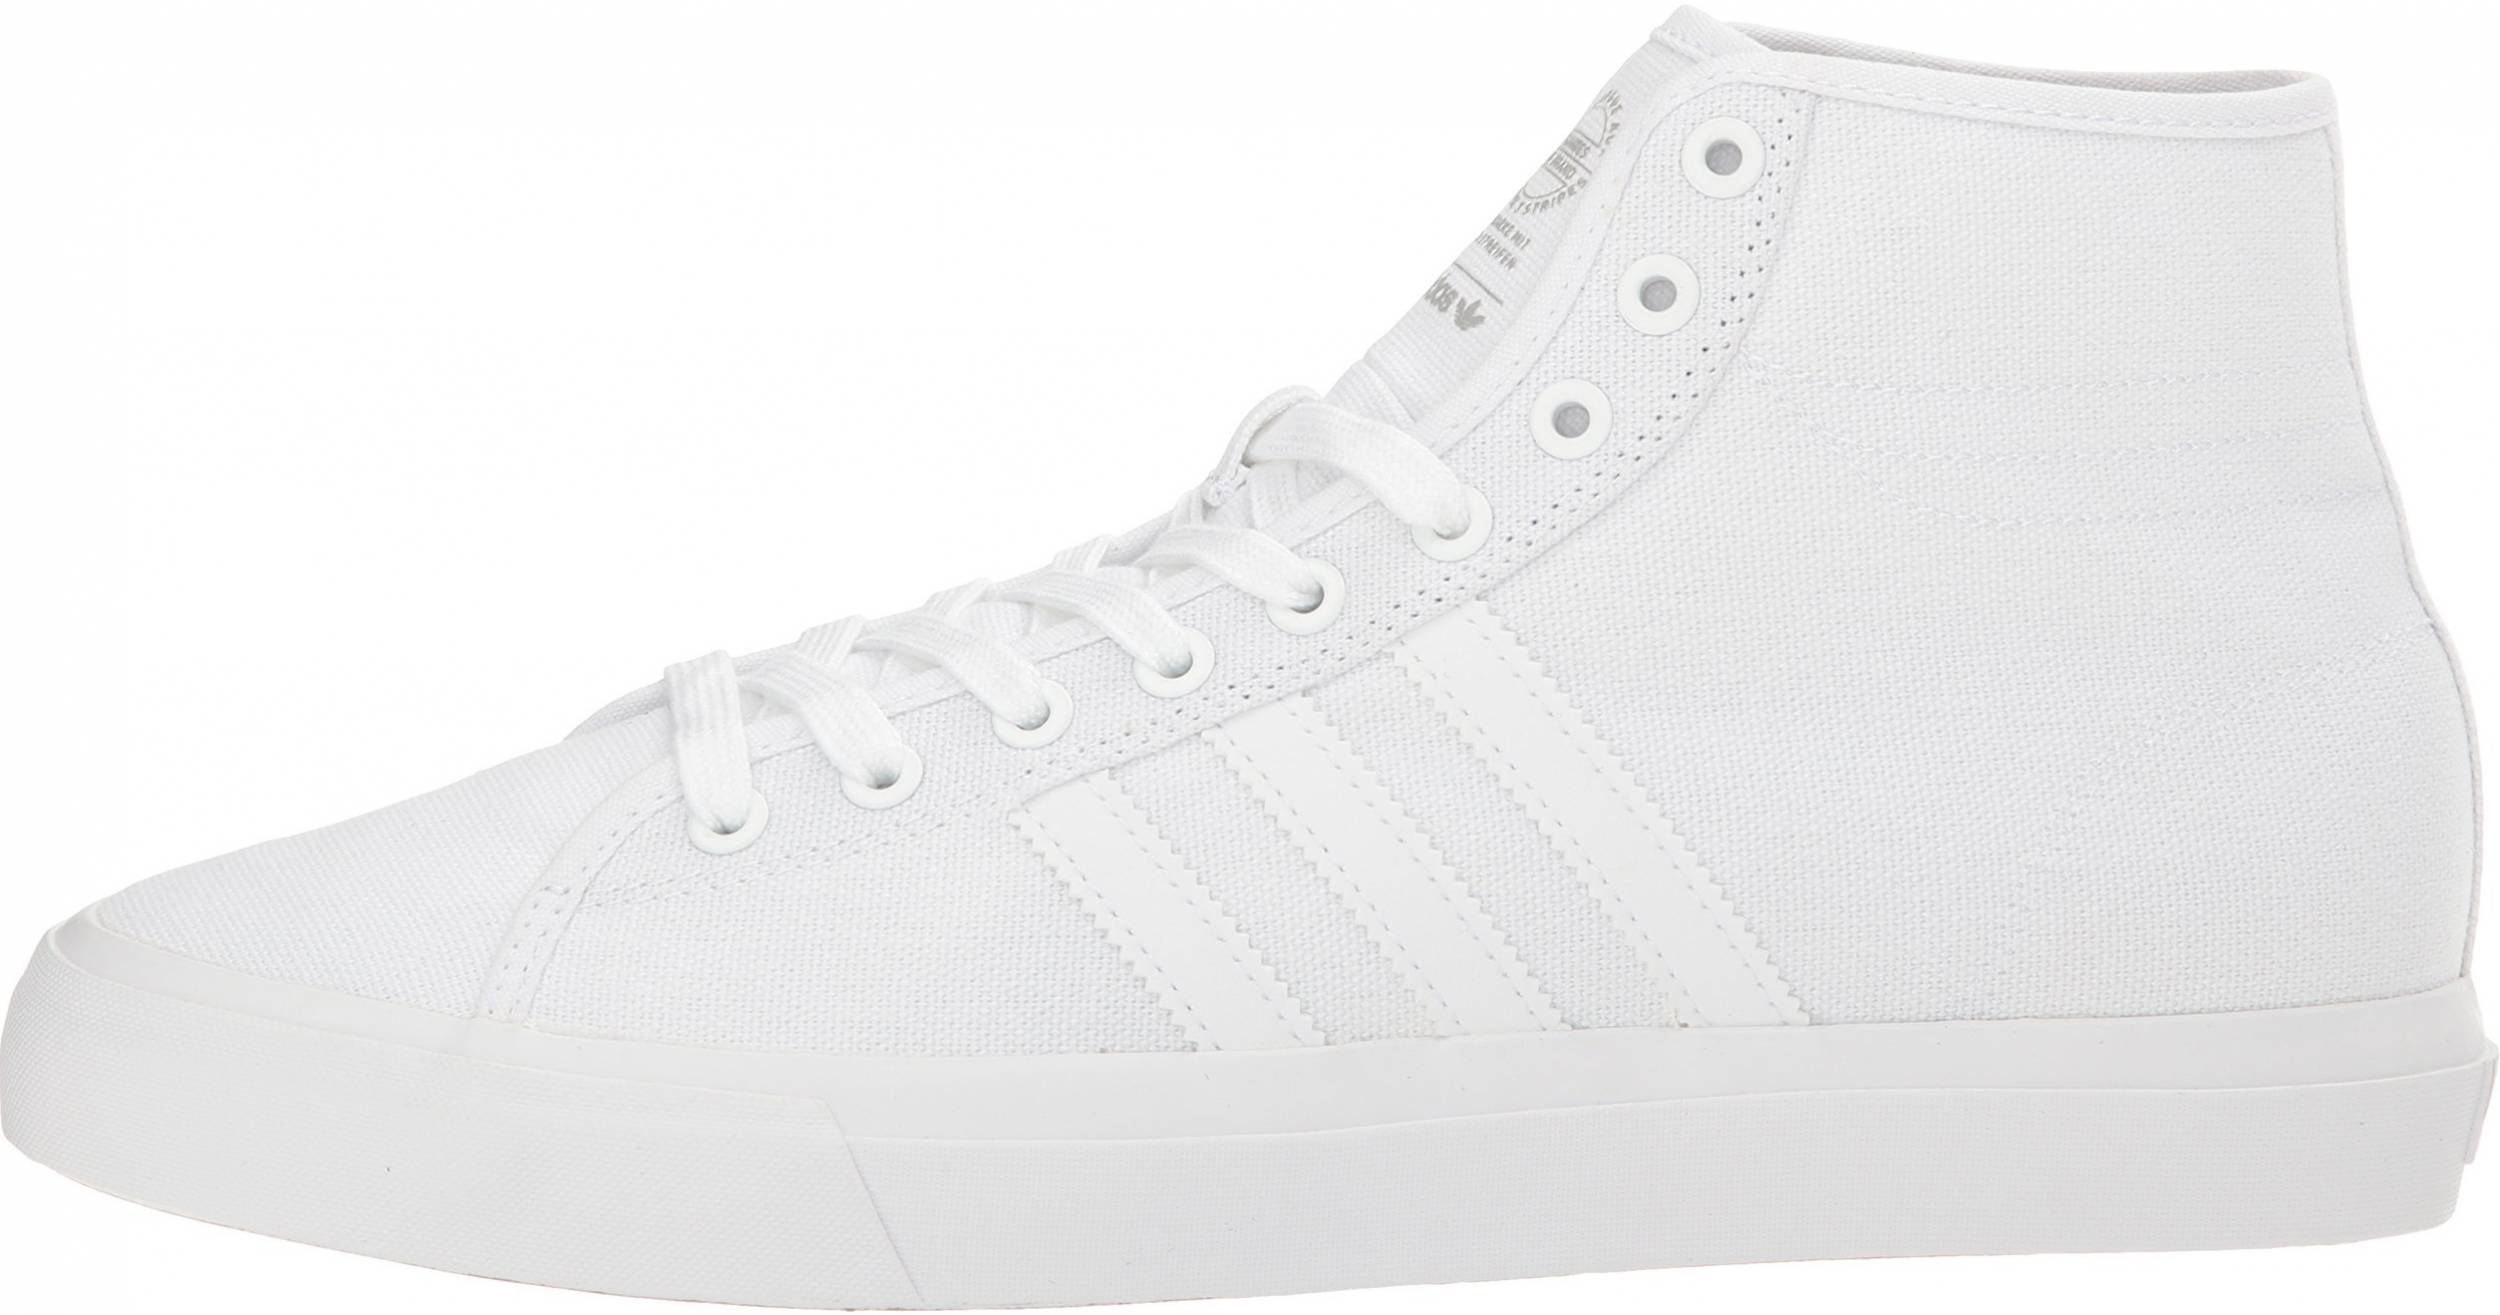 Save 41% on White High Top Sneakers (49